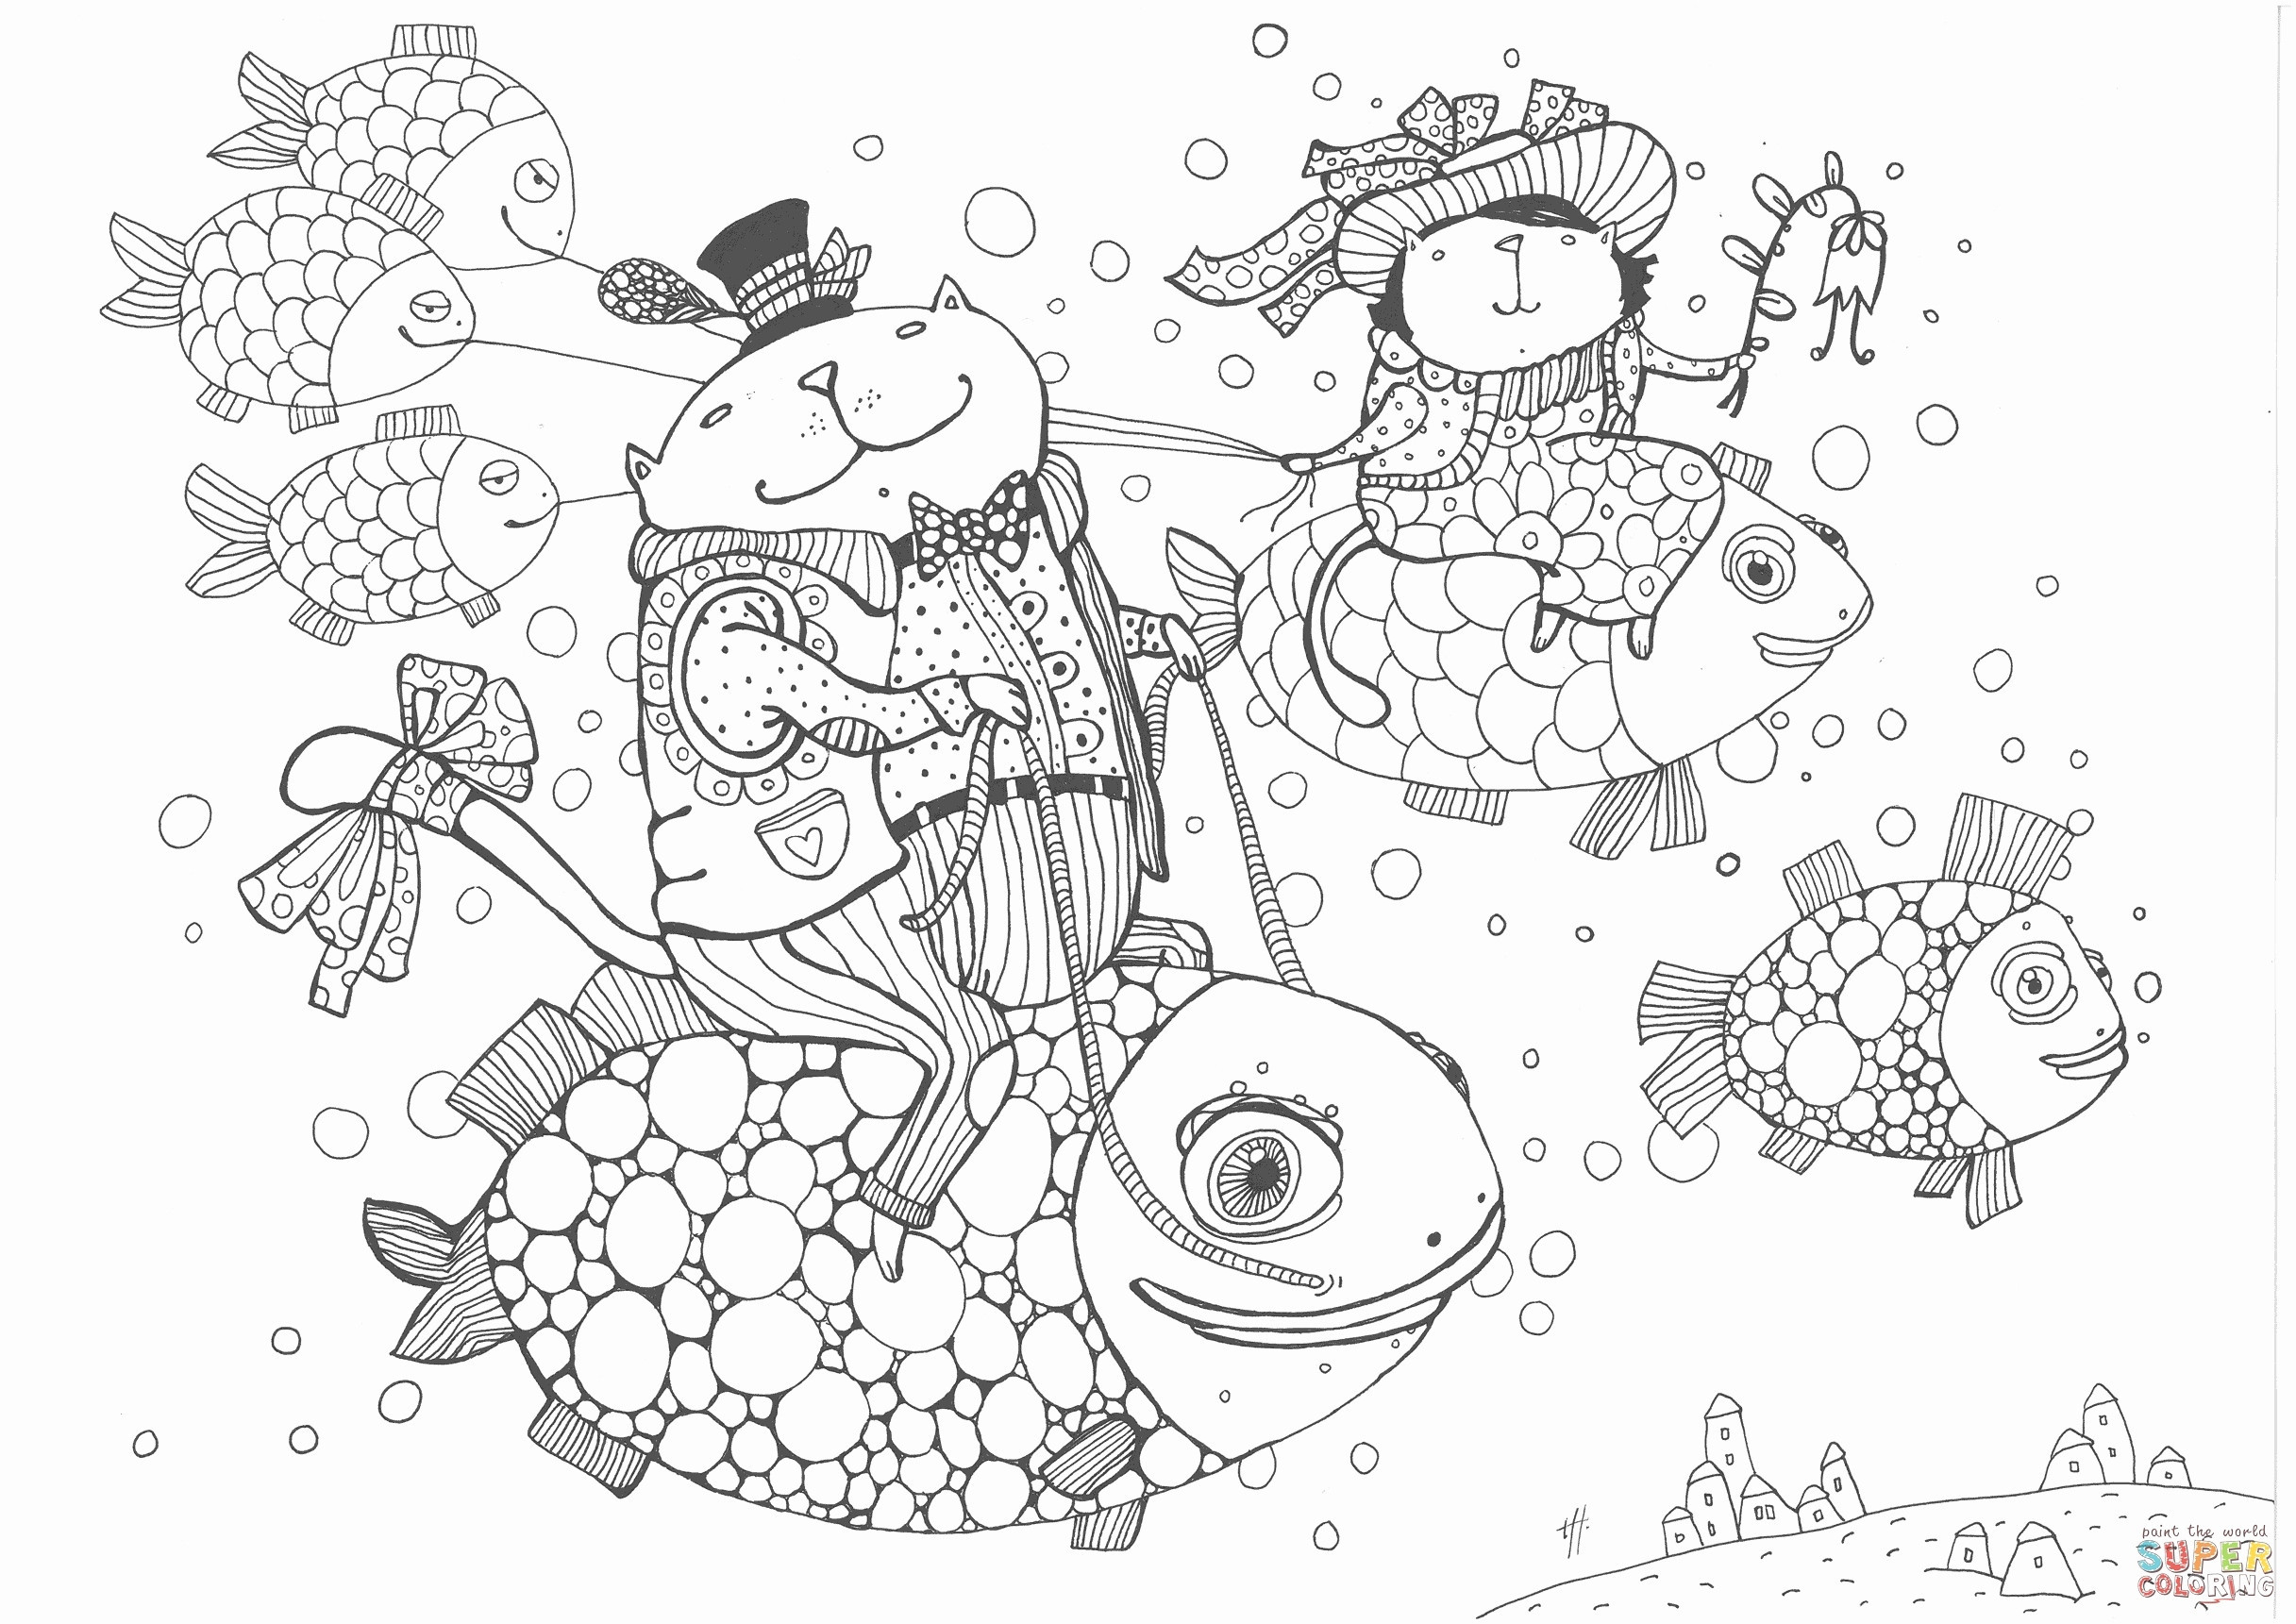 mindfulness coloring pages Download-Free Mindful Colouring Pages to Print Elegant Mindfulness Colouring 17-d